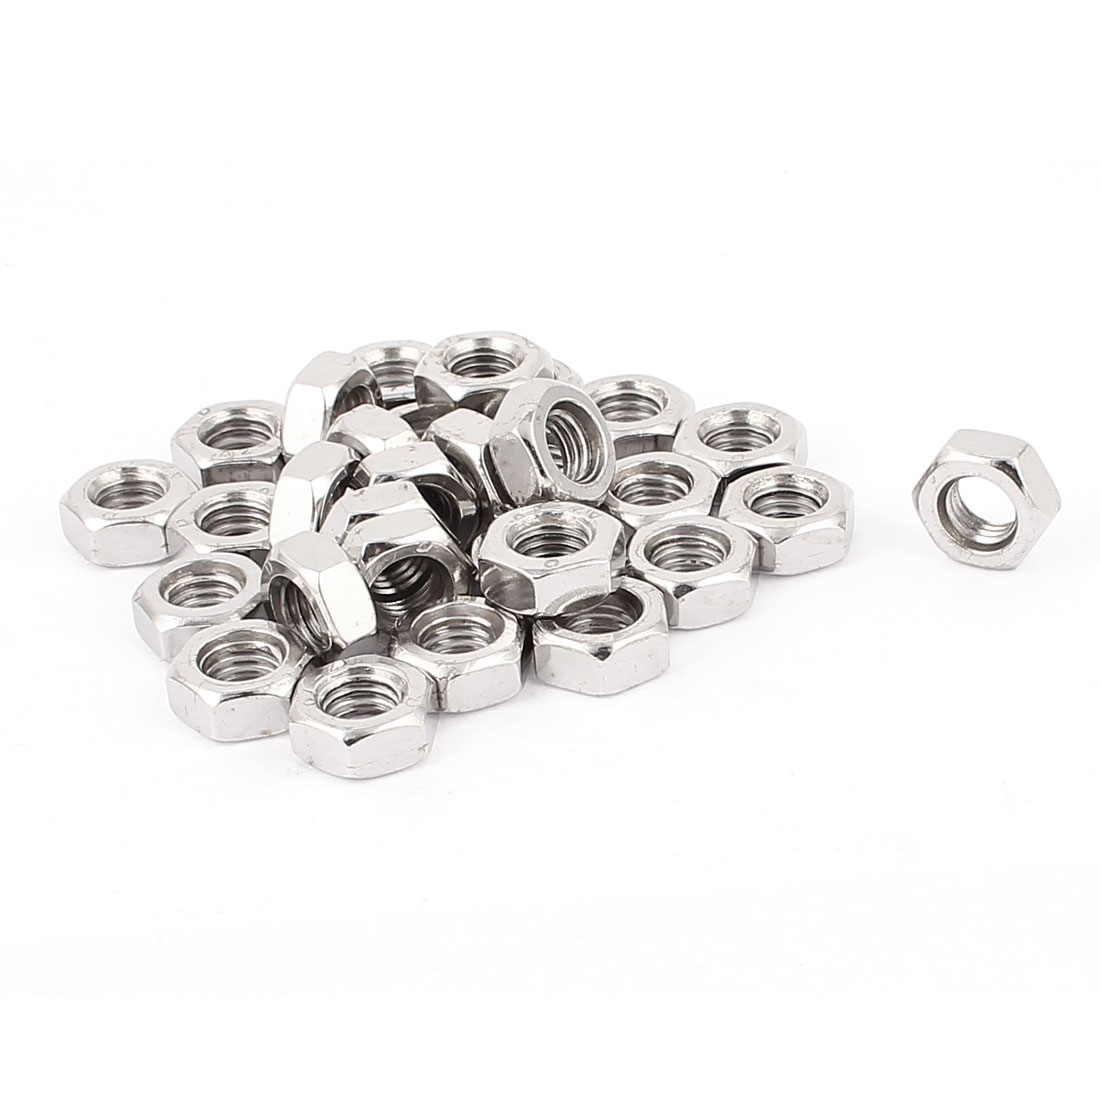 30pcs 304 Stainless Steel M10 Thread Hex Machine Screw Nut Silver Tone